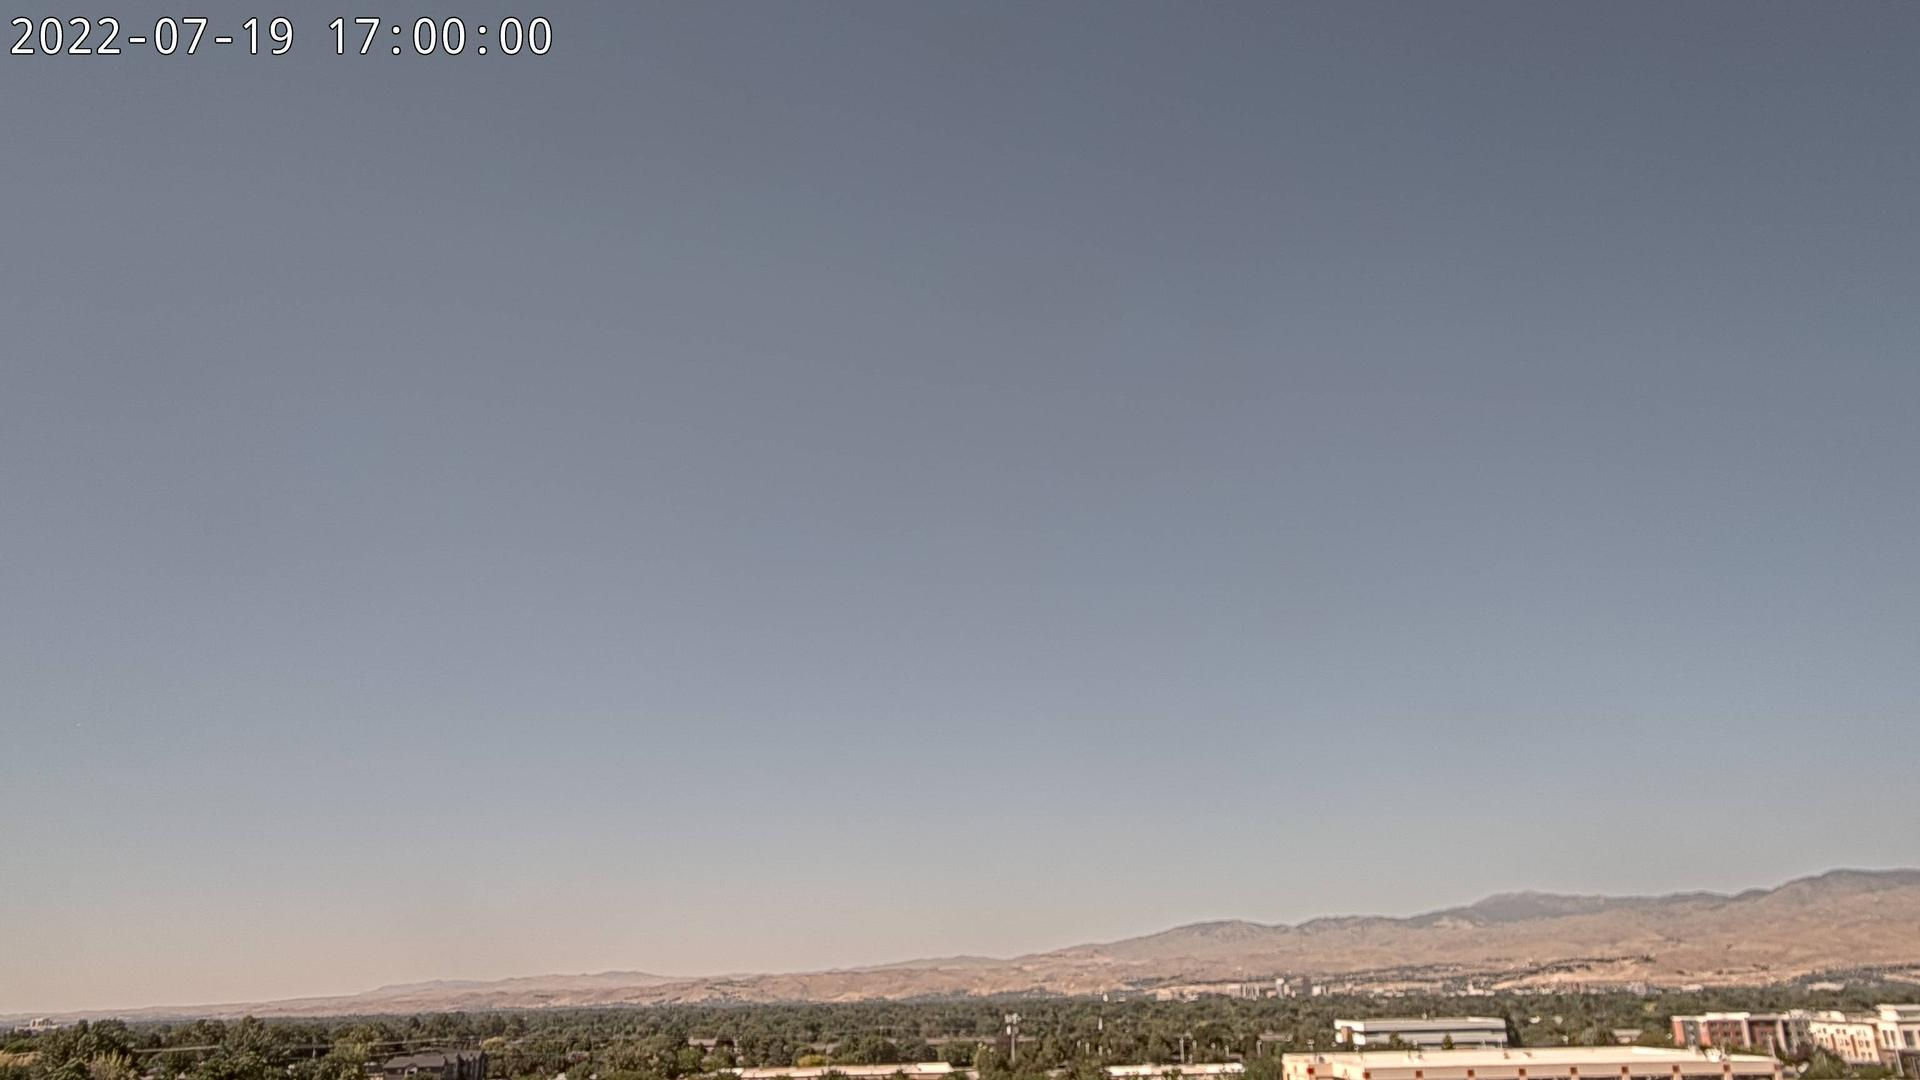 Webcam Boise: Air Quality Camera